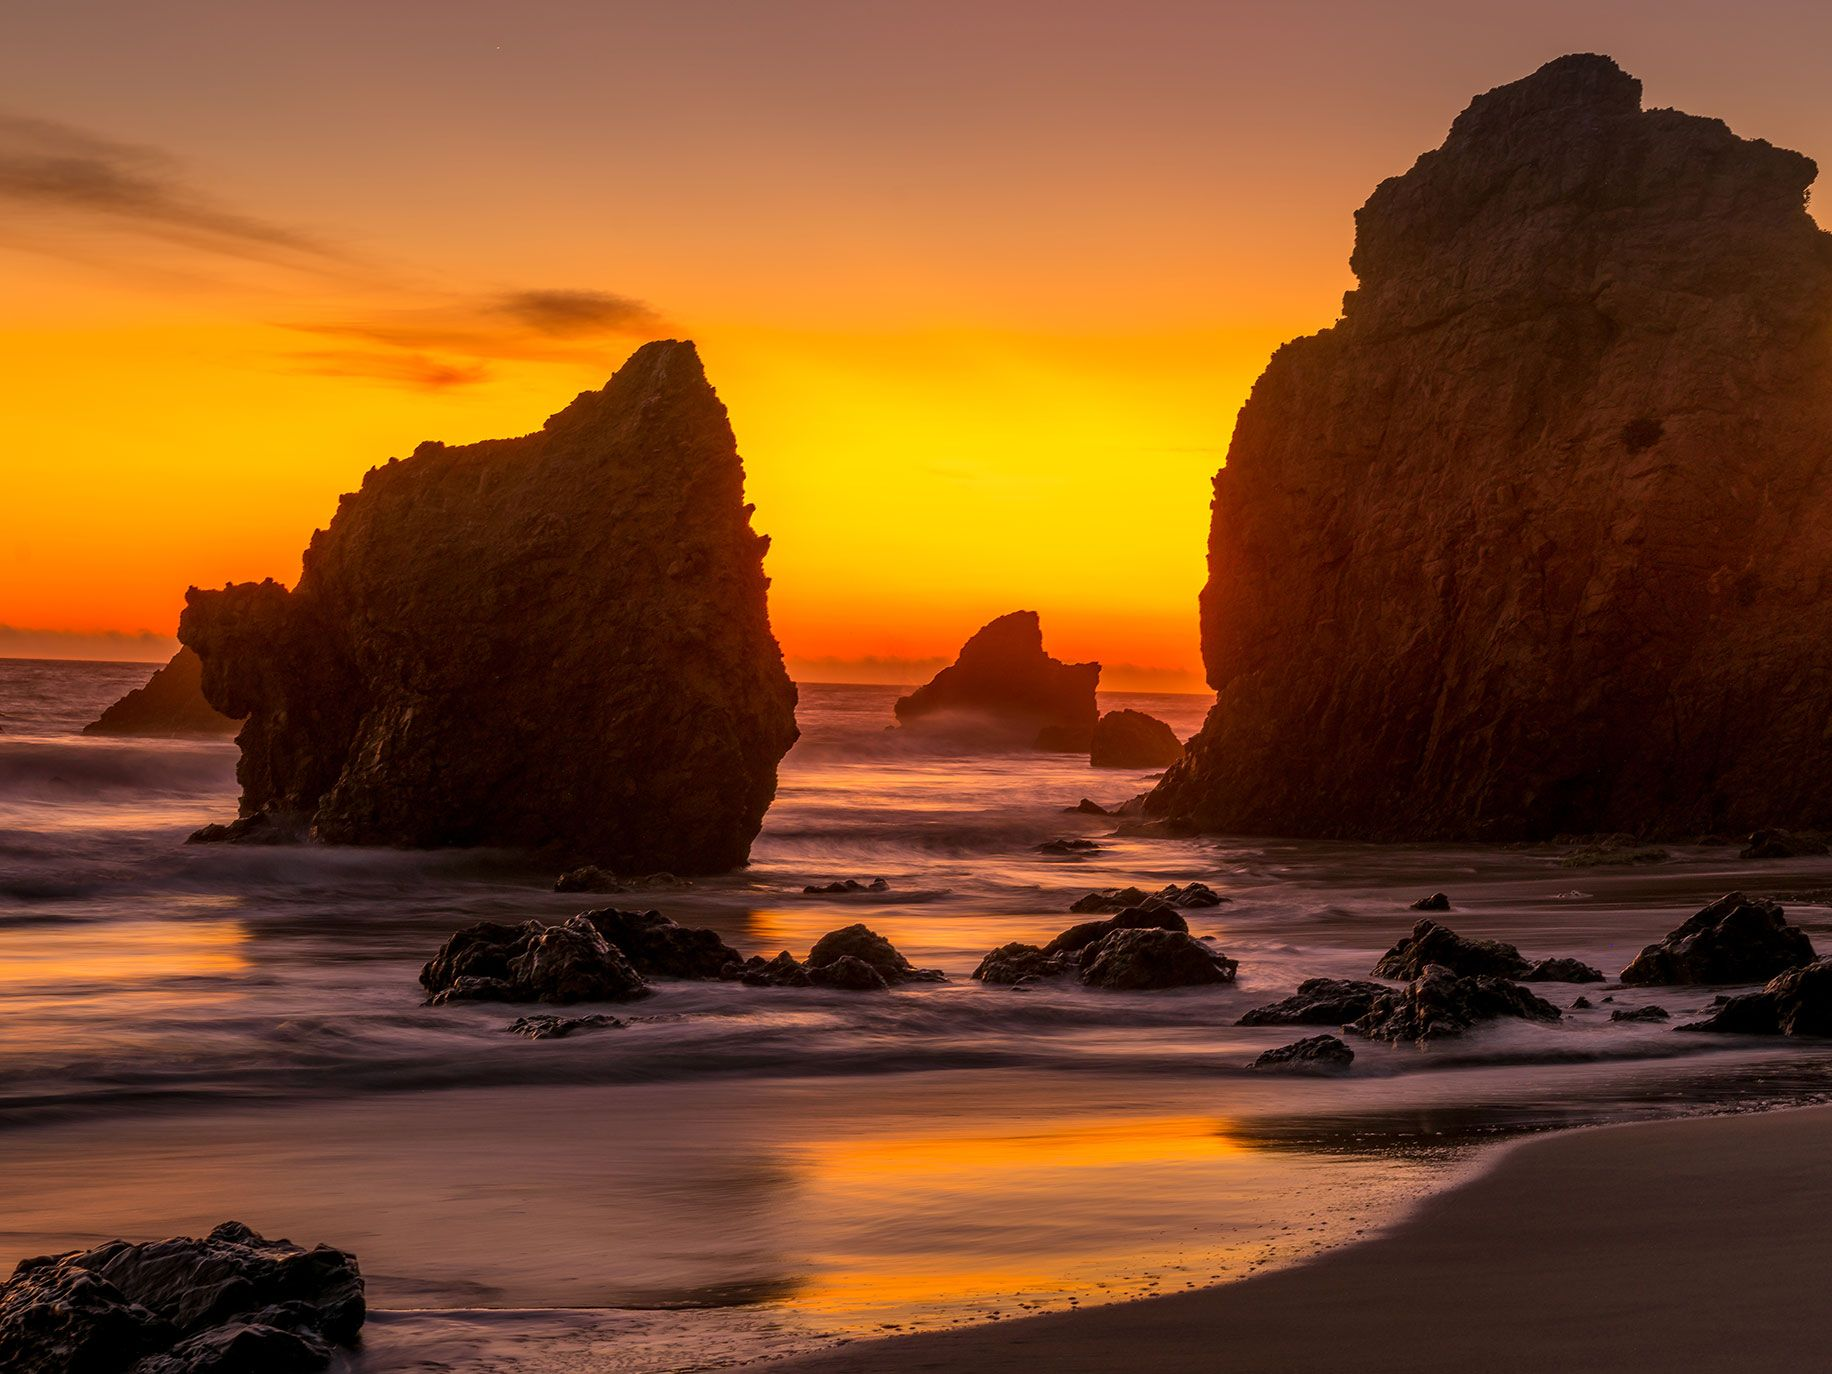 El Matador Beach has been used as a filming location for many movies over the years.